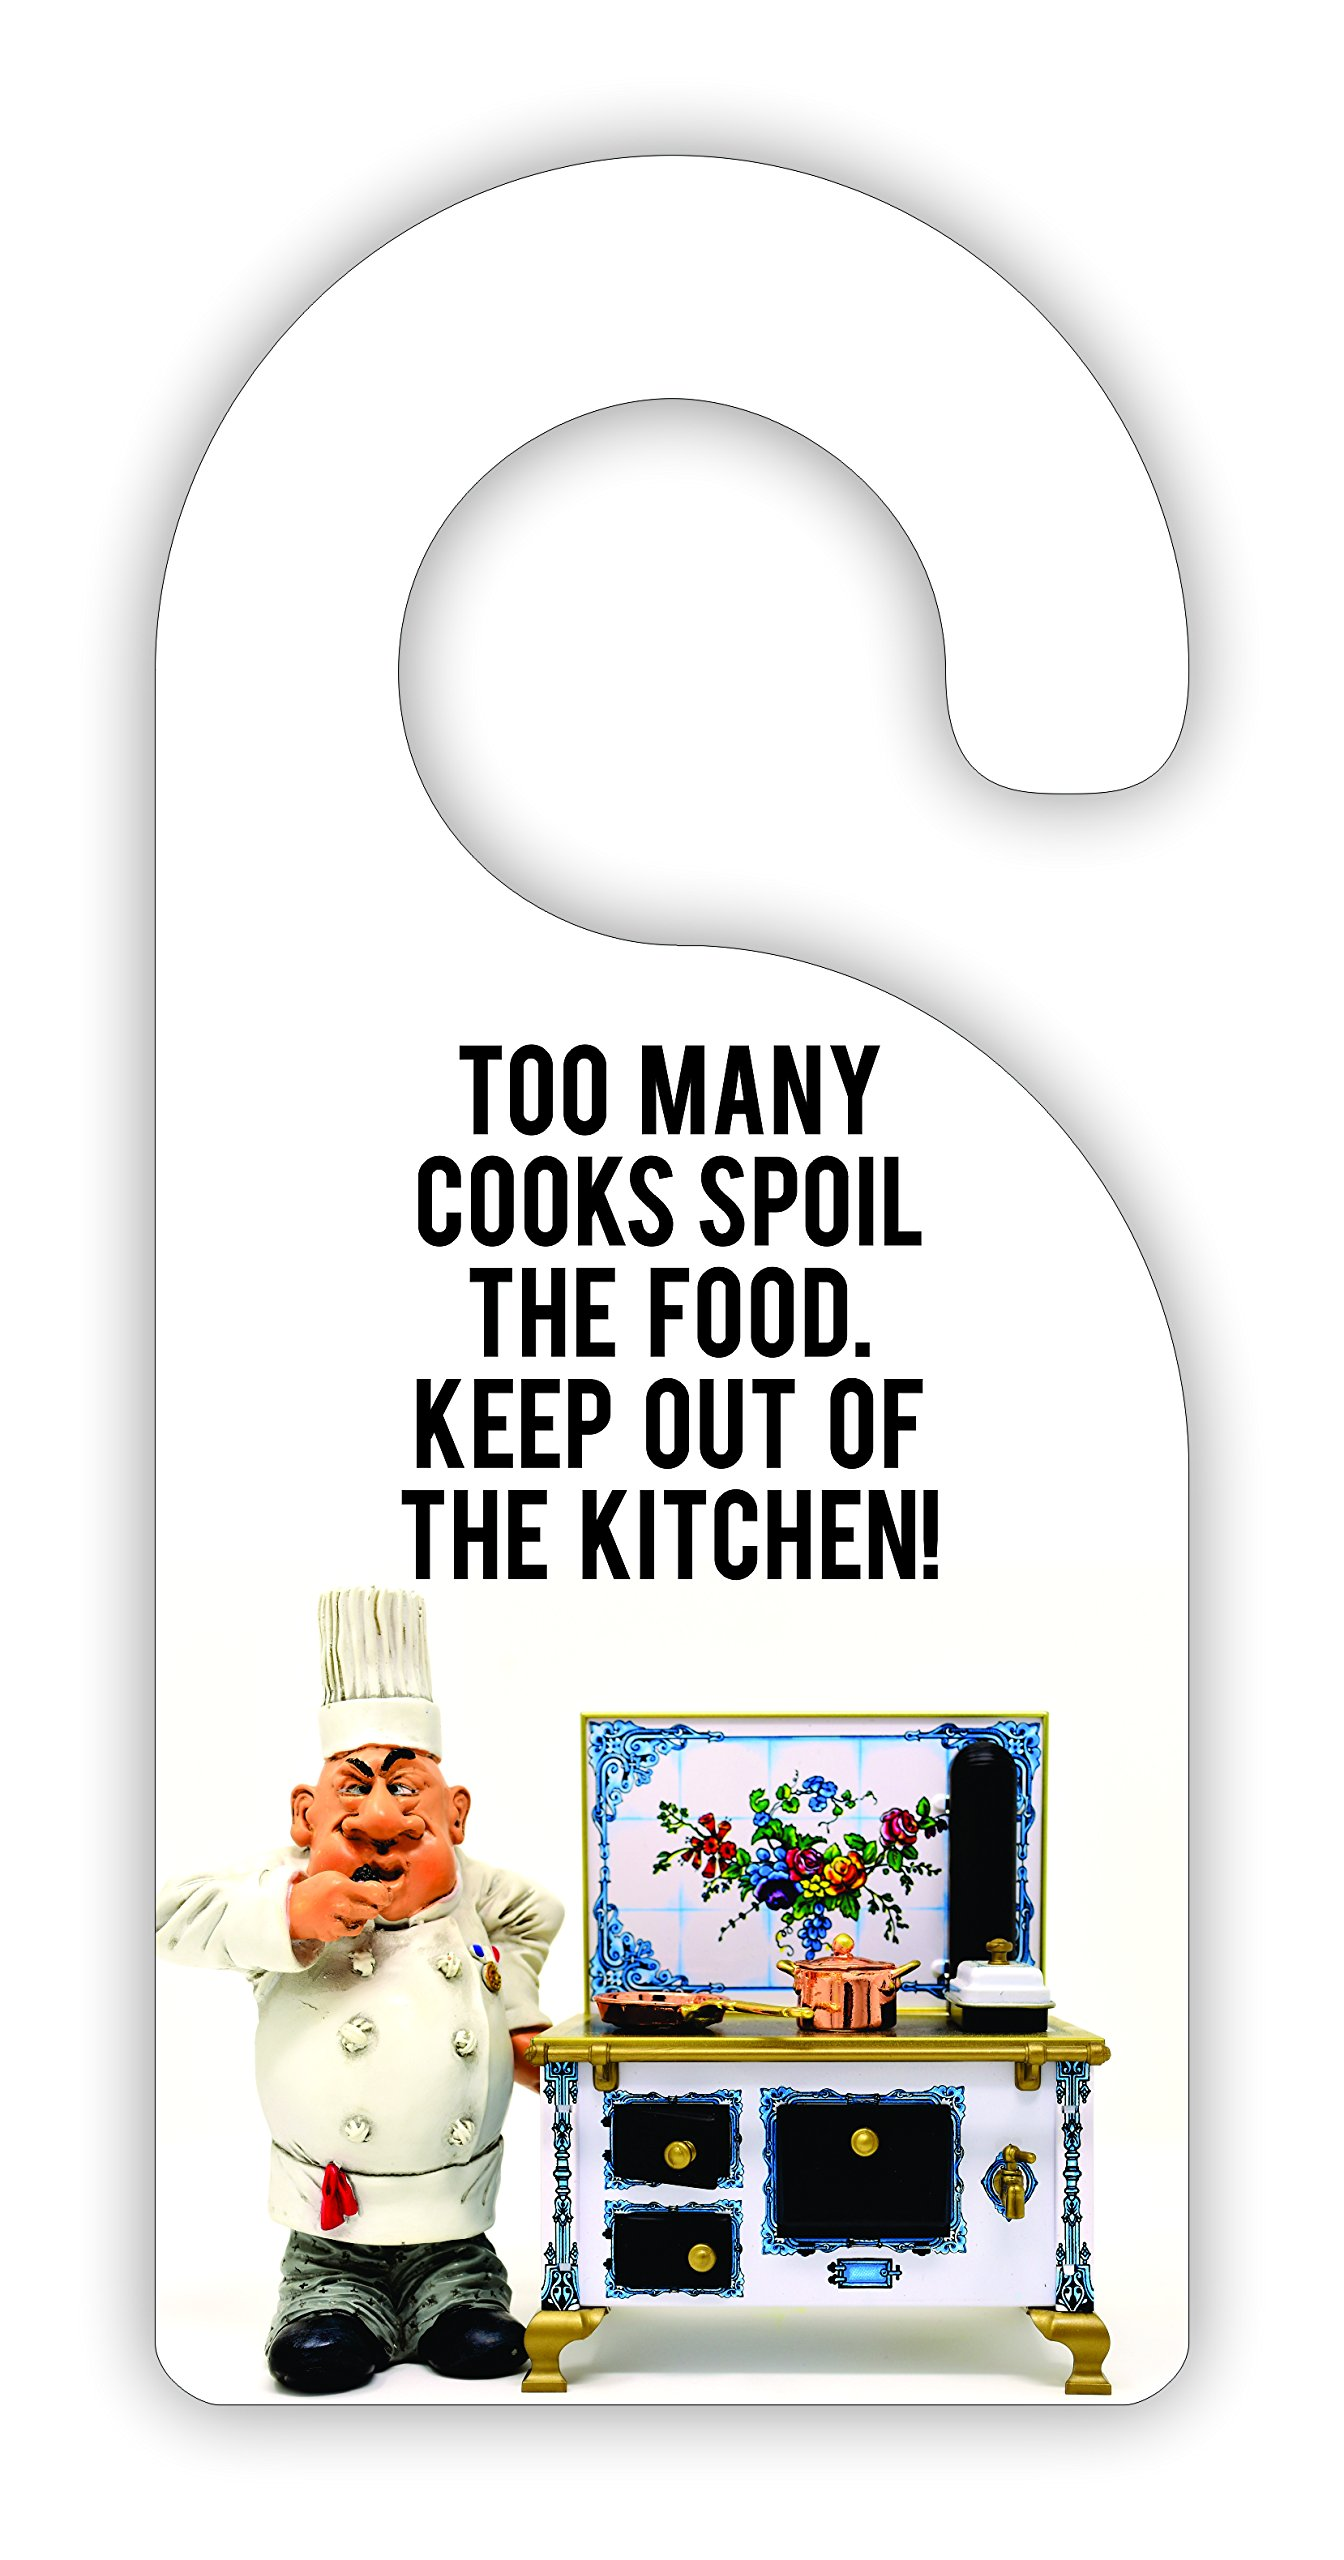 Too Many Cooks Spoil the Food. Keep Out Of The Kitchen! Room Door Sign Hanger - Hardboard - Glossy Finish